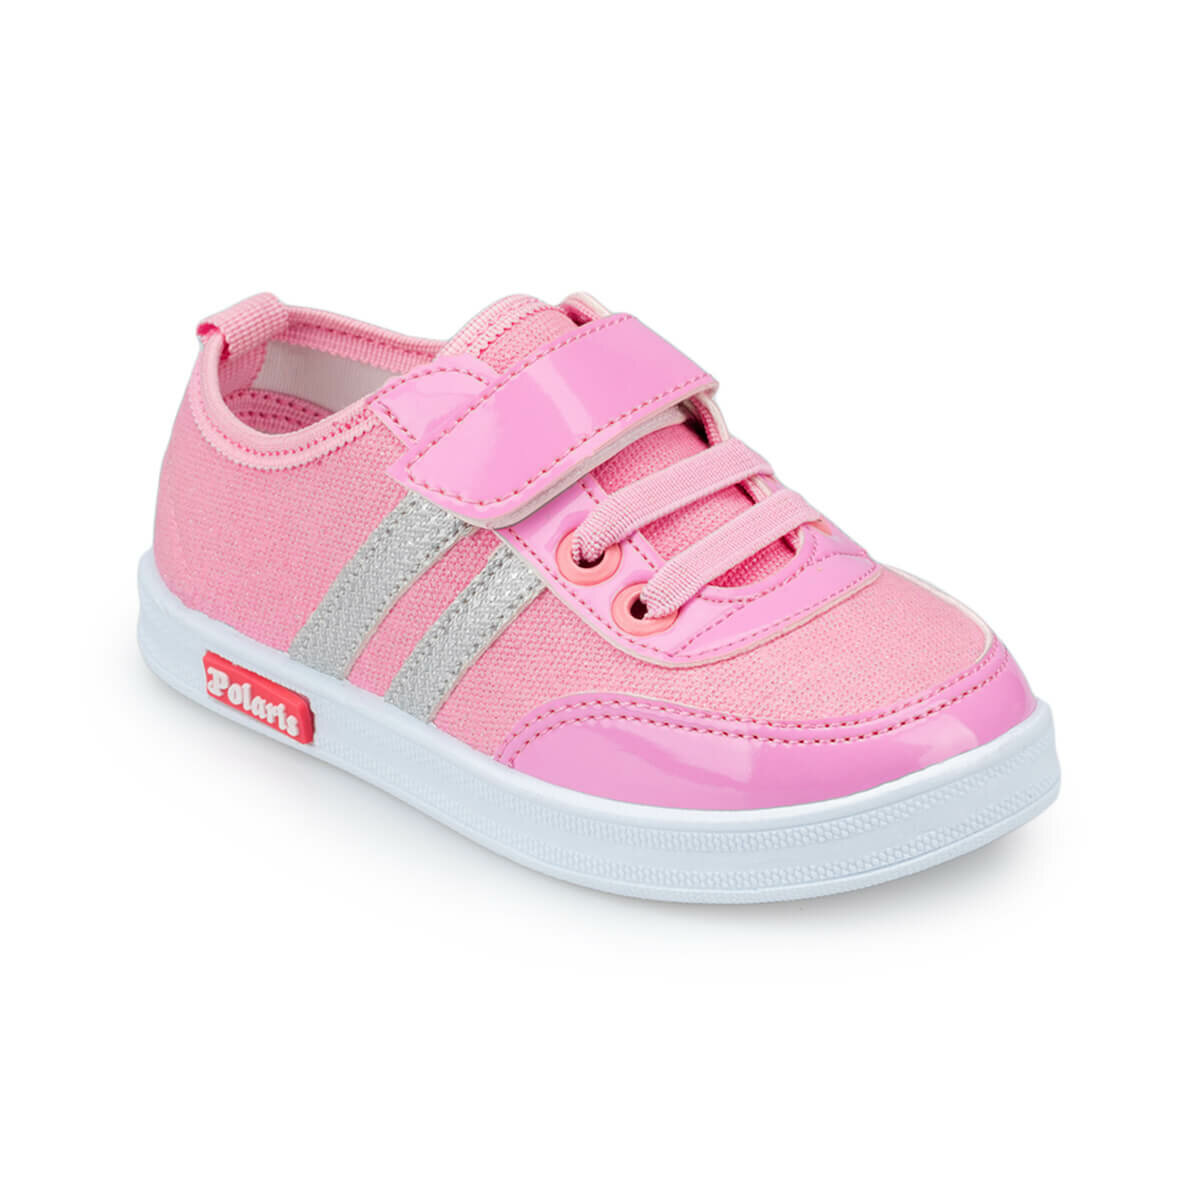 FLO 91. 510364.P Pink Female Child Sports Shoes Polaris